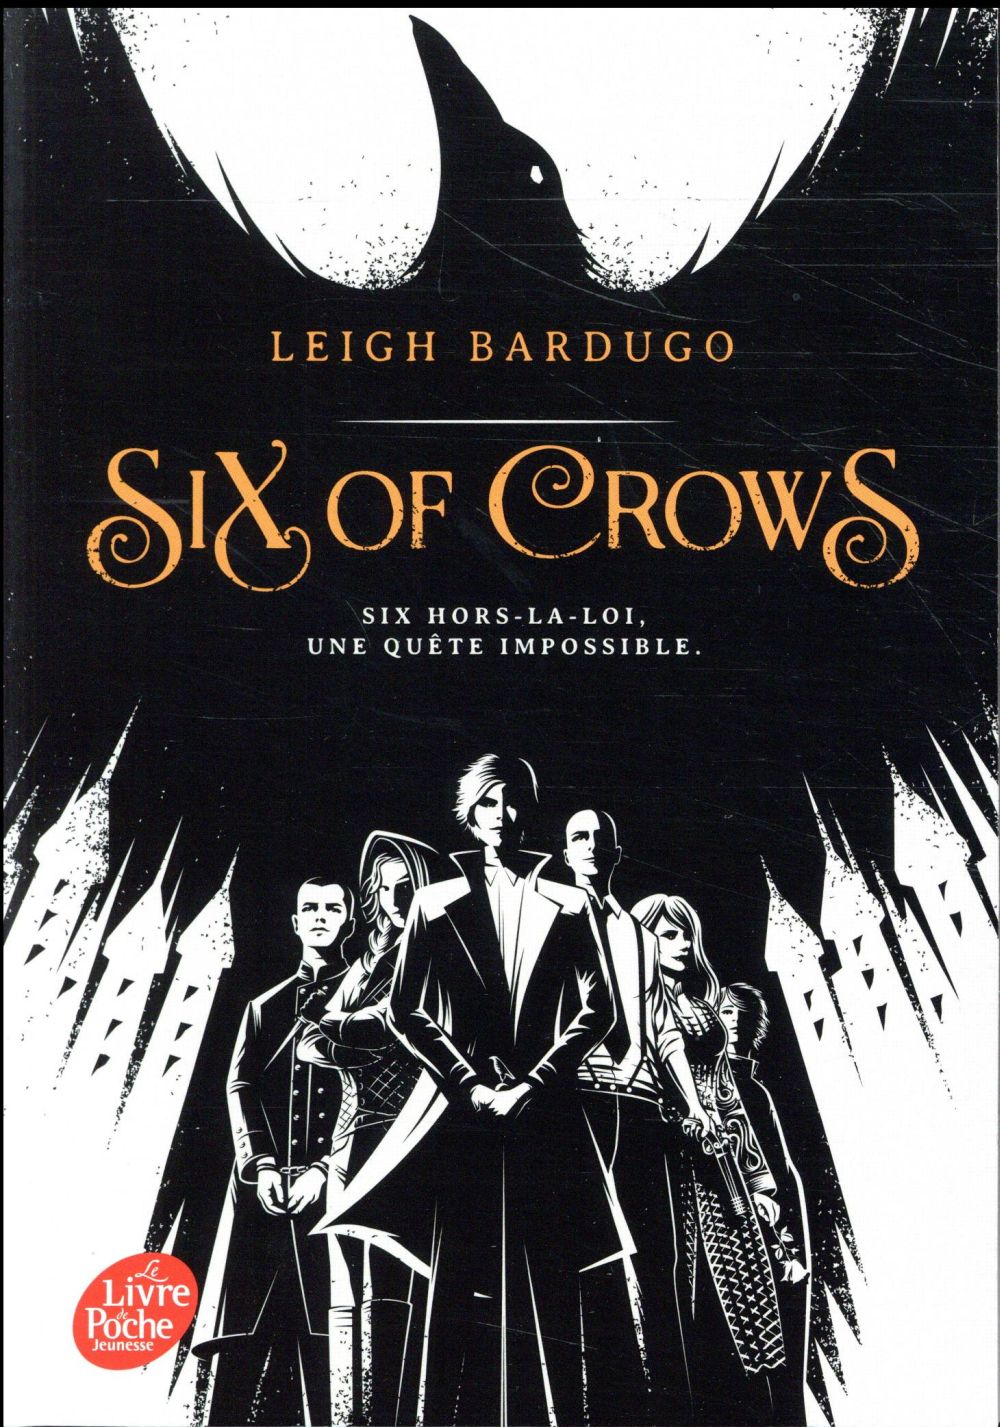 SIX OF CROWS - TOME 1 Bardugo Leigh Le Livre de poche jeunesse